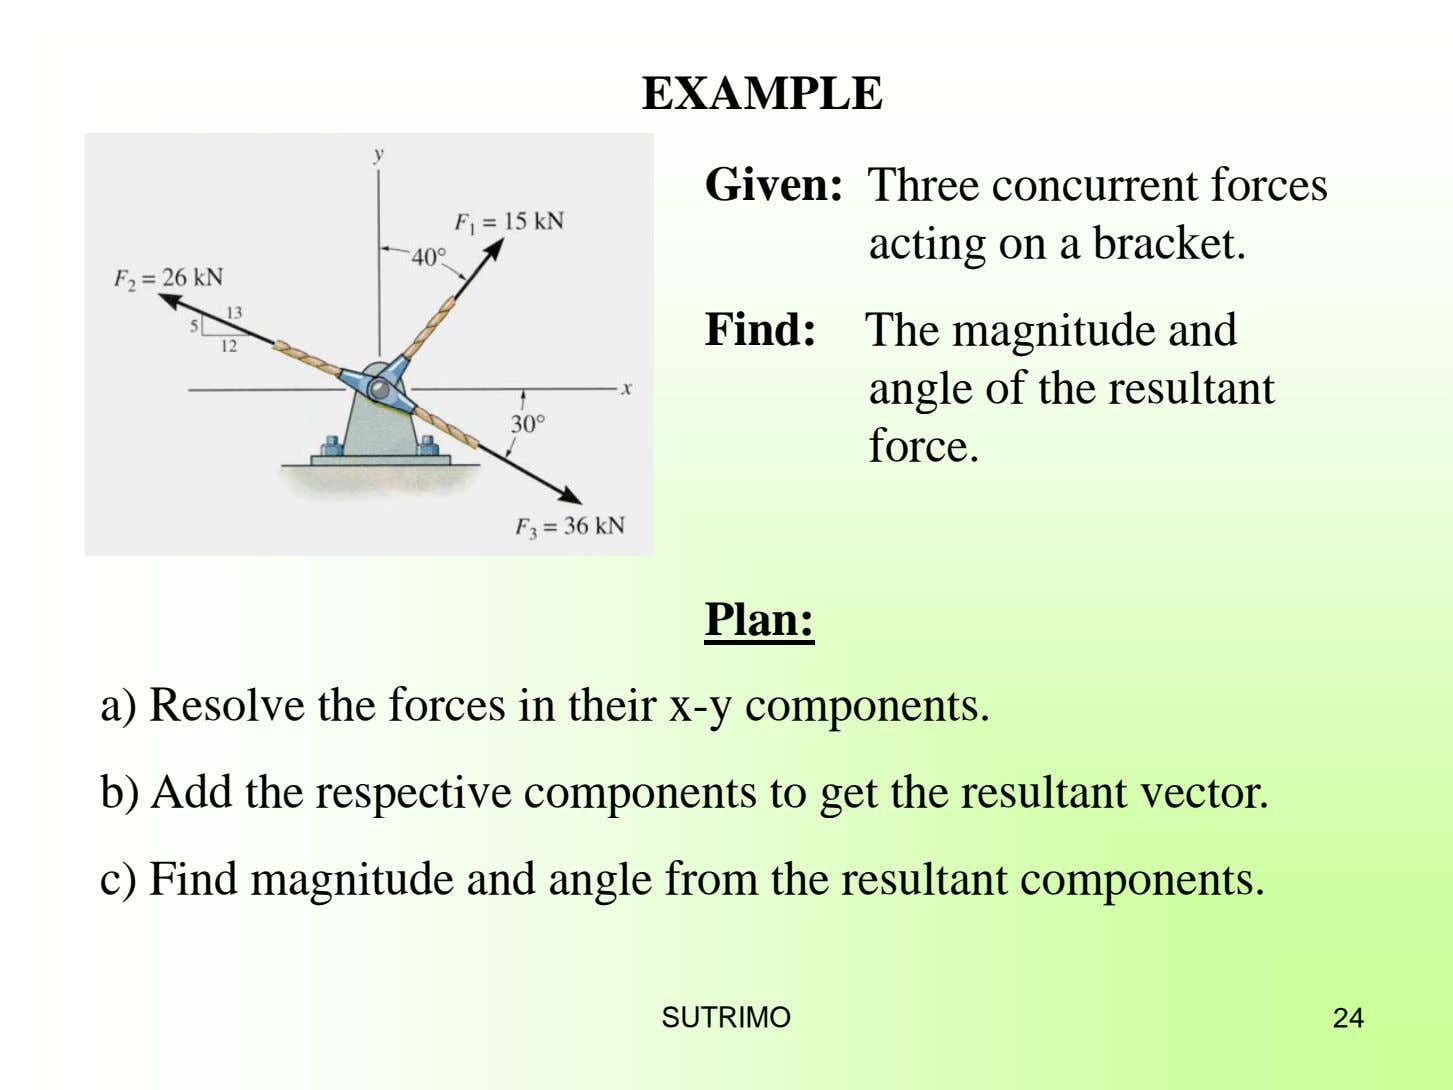 EXAMPLE Given: Three concurrent forces acting on a bracket. Find: The magnitude and angle of